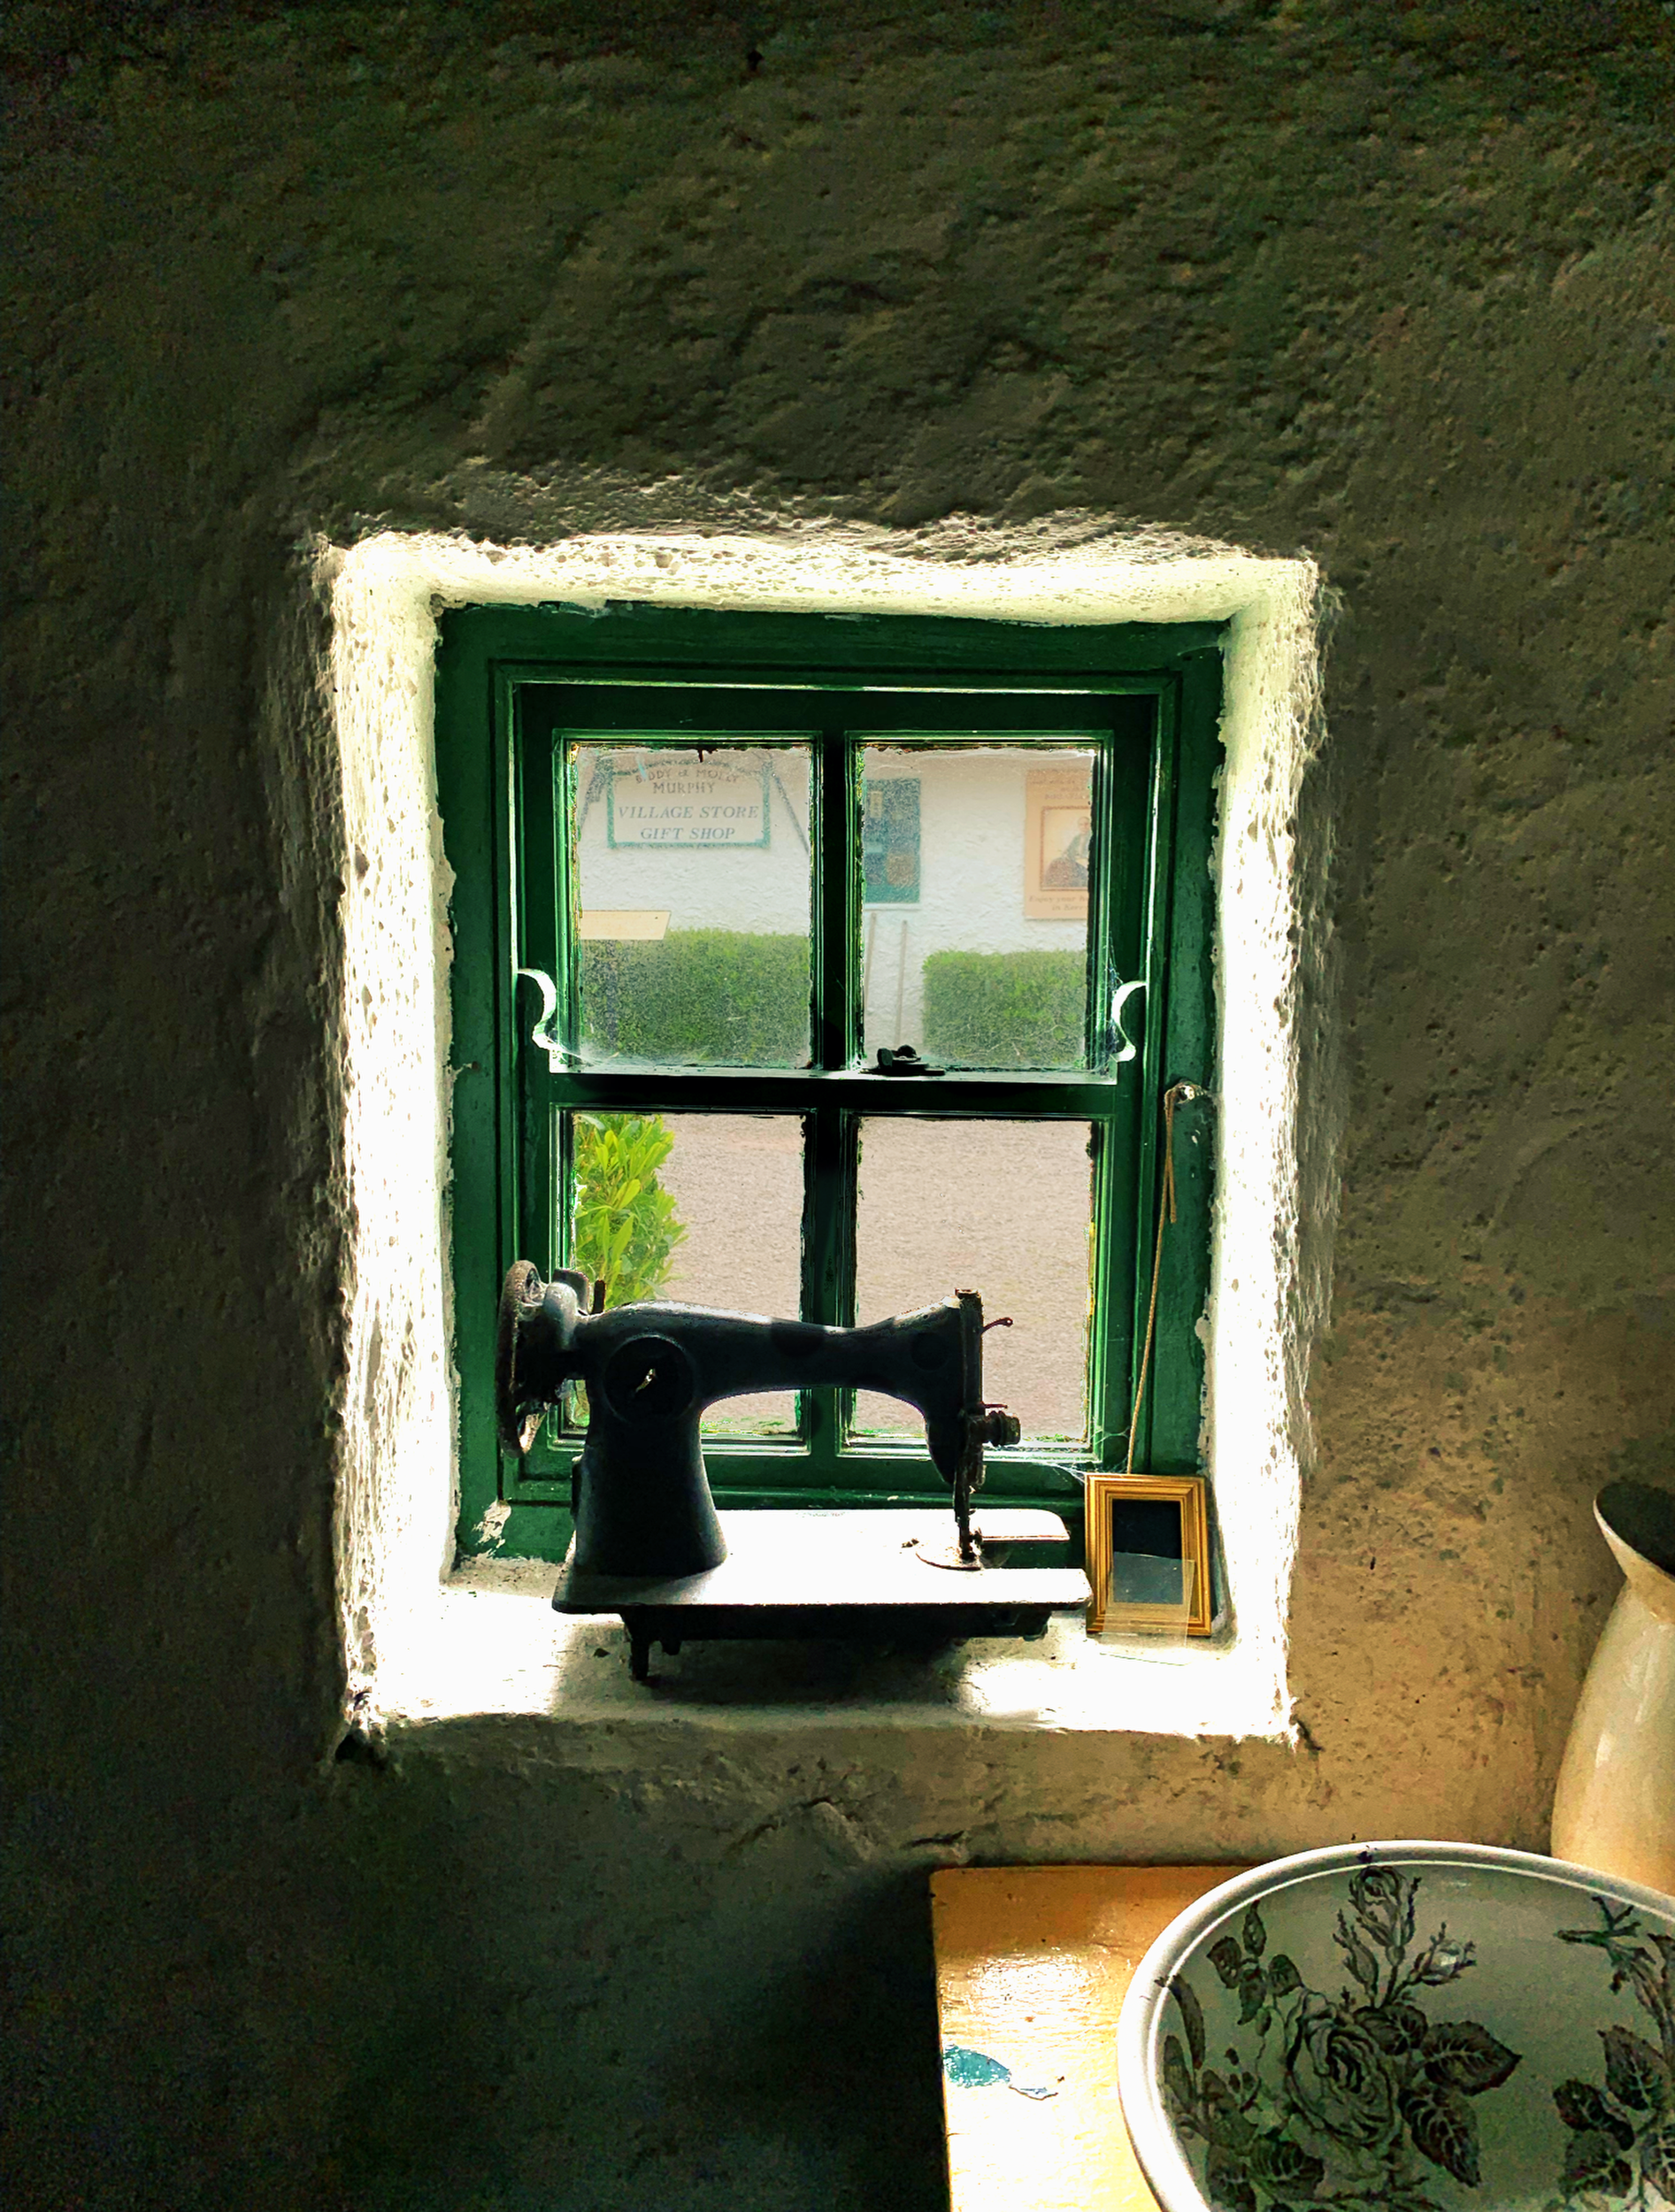 June 3, 2019 - Domestic bliss? [Photo taken at The Red Fox Inn and Kerry Bog Museum; Glenbeigh; County Kerry; Ireland and edited in iColorama]